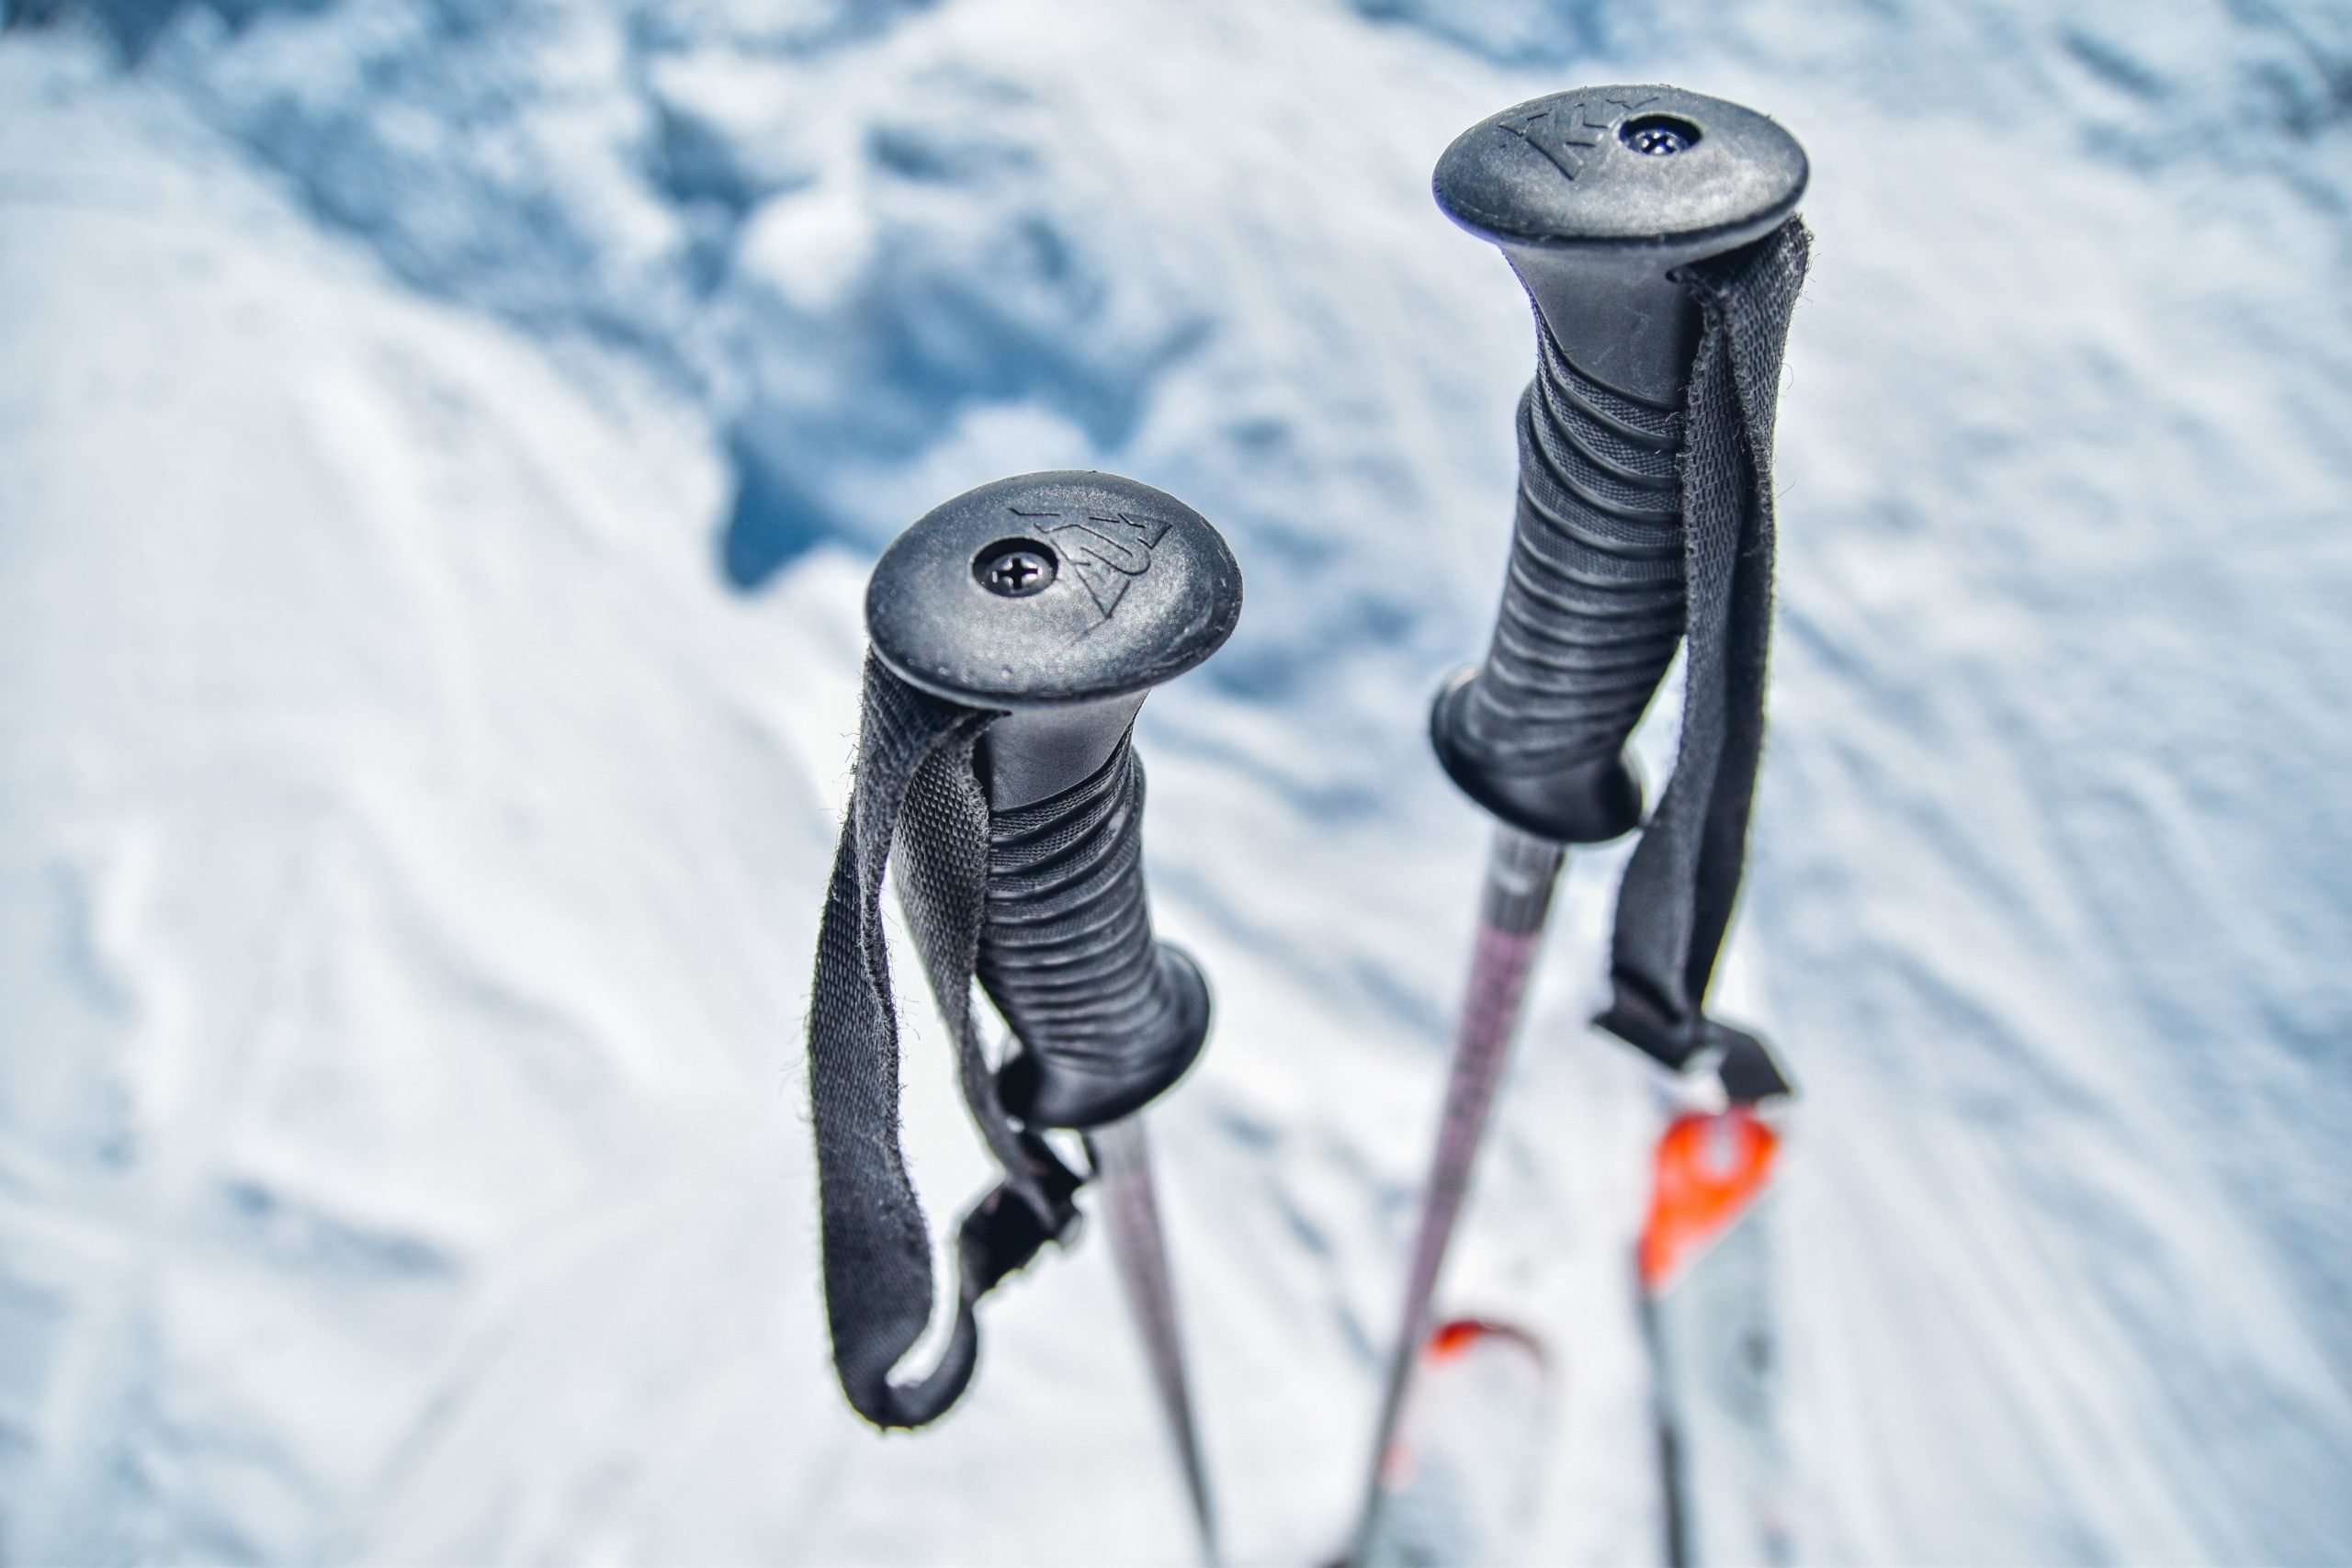 Close up shot of pair of ski poles